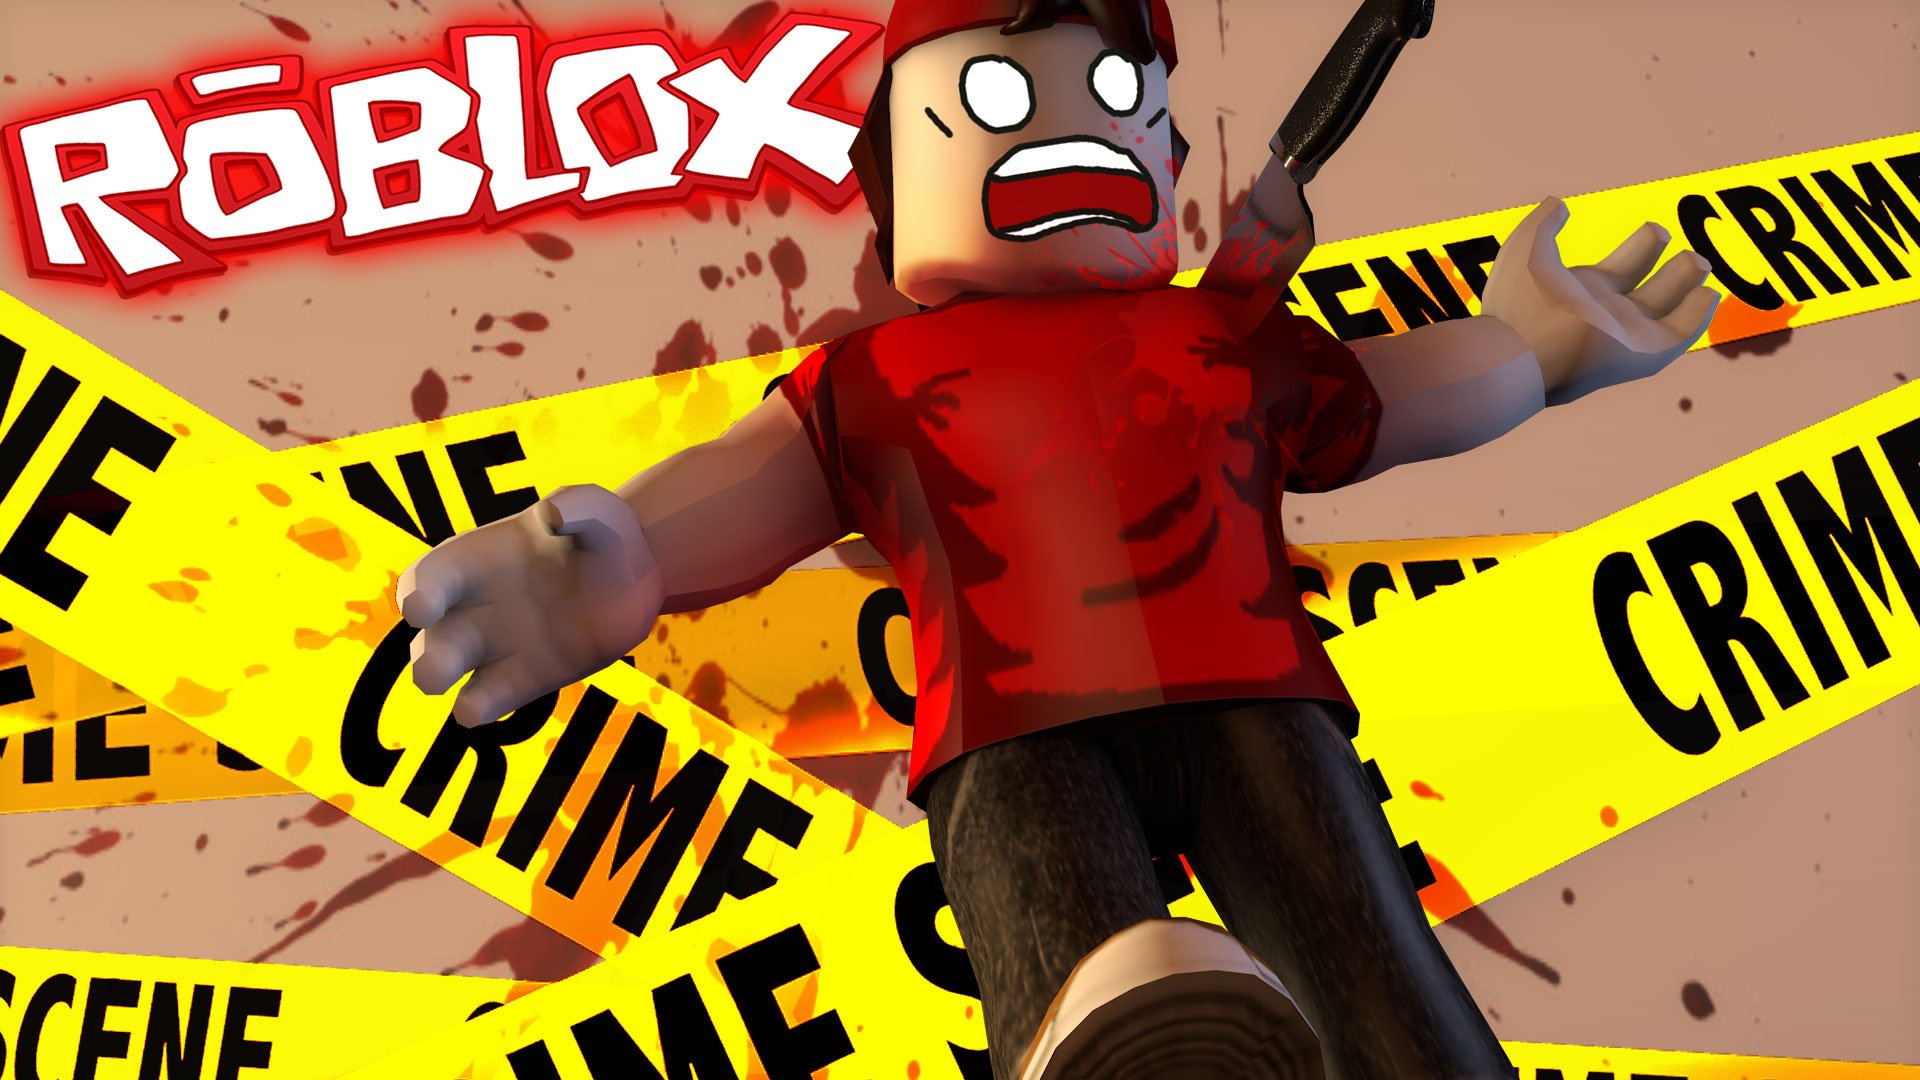 Murder Mystery Roblox Background Red On Twitter Roblox Adventures Murder Mystery 2 Run For Your Life Https T Co Qgjy4mvs1g